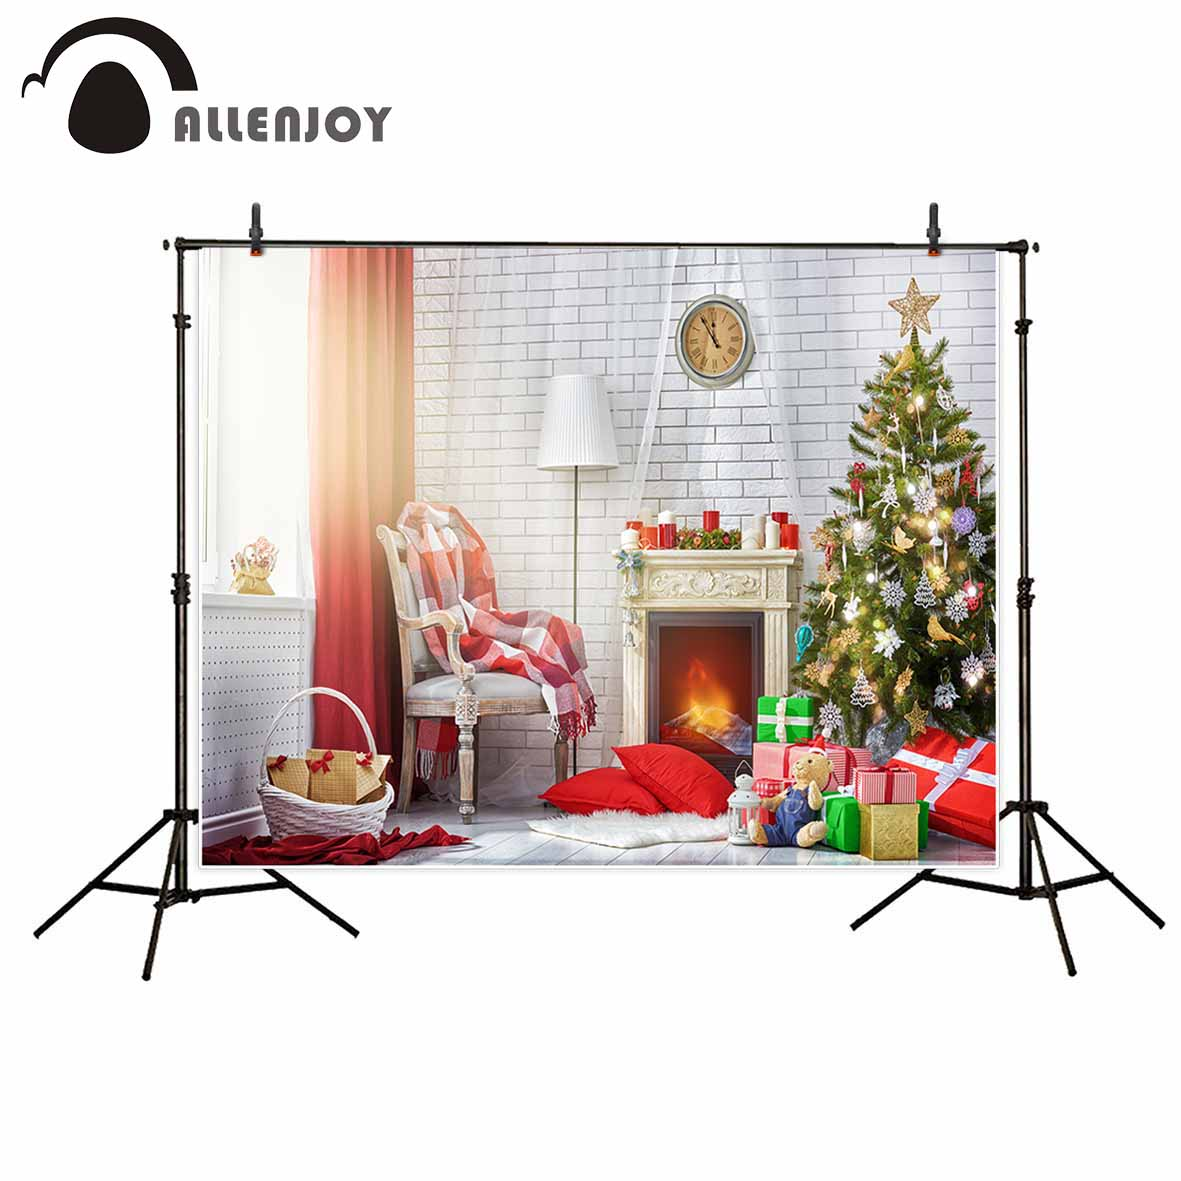 Allenjoy photographic background Life Christmas tree gift armchair fireplace Photographic for study Photo